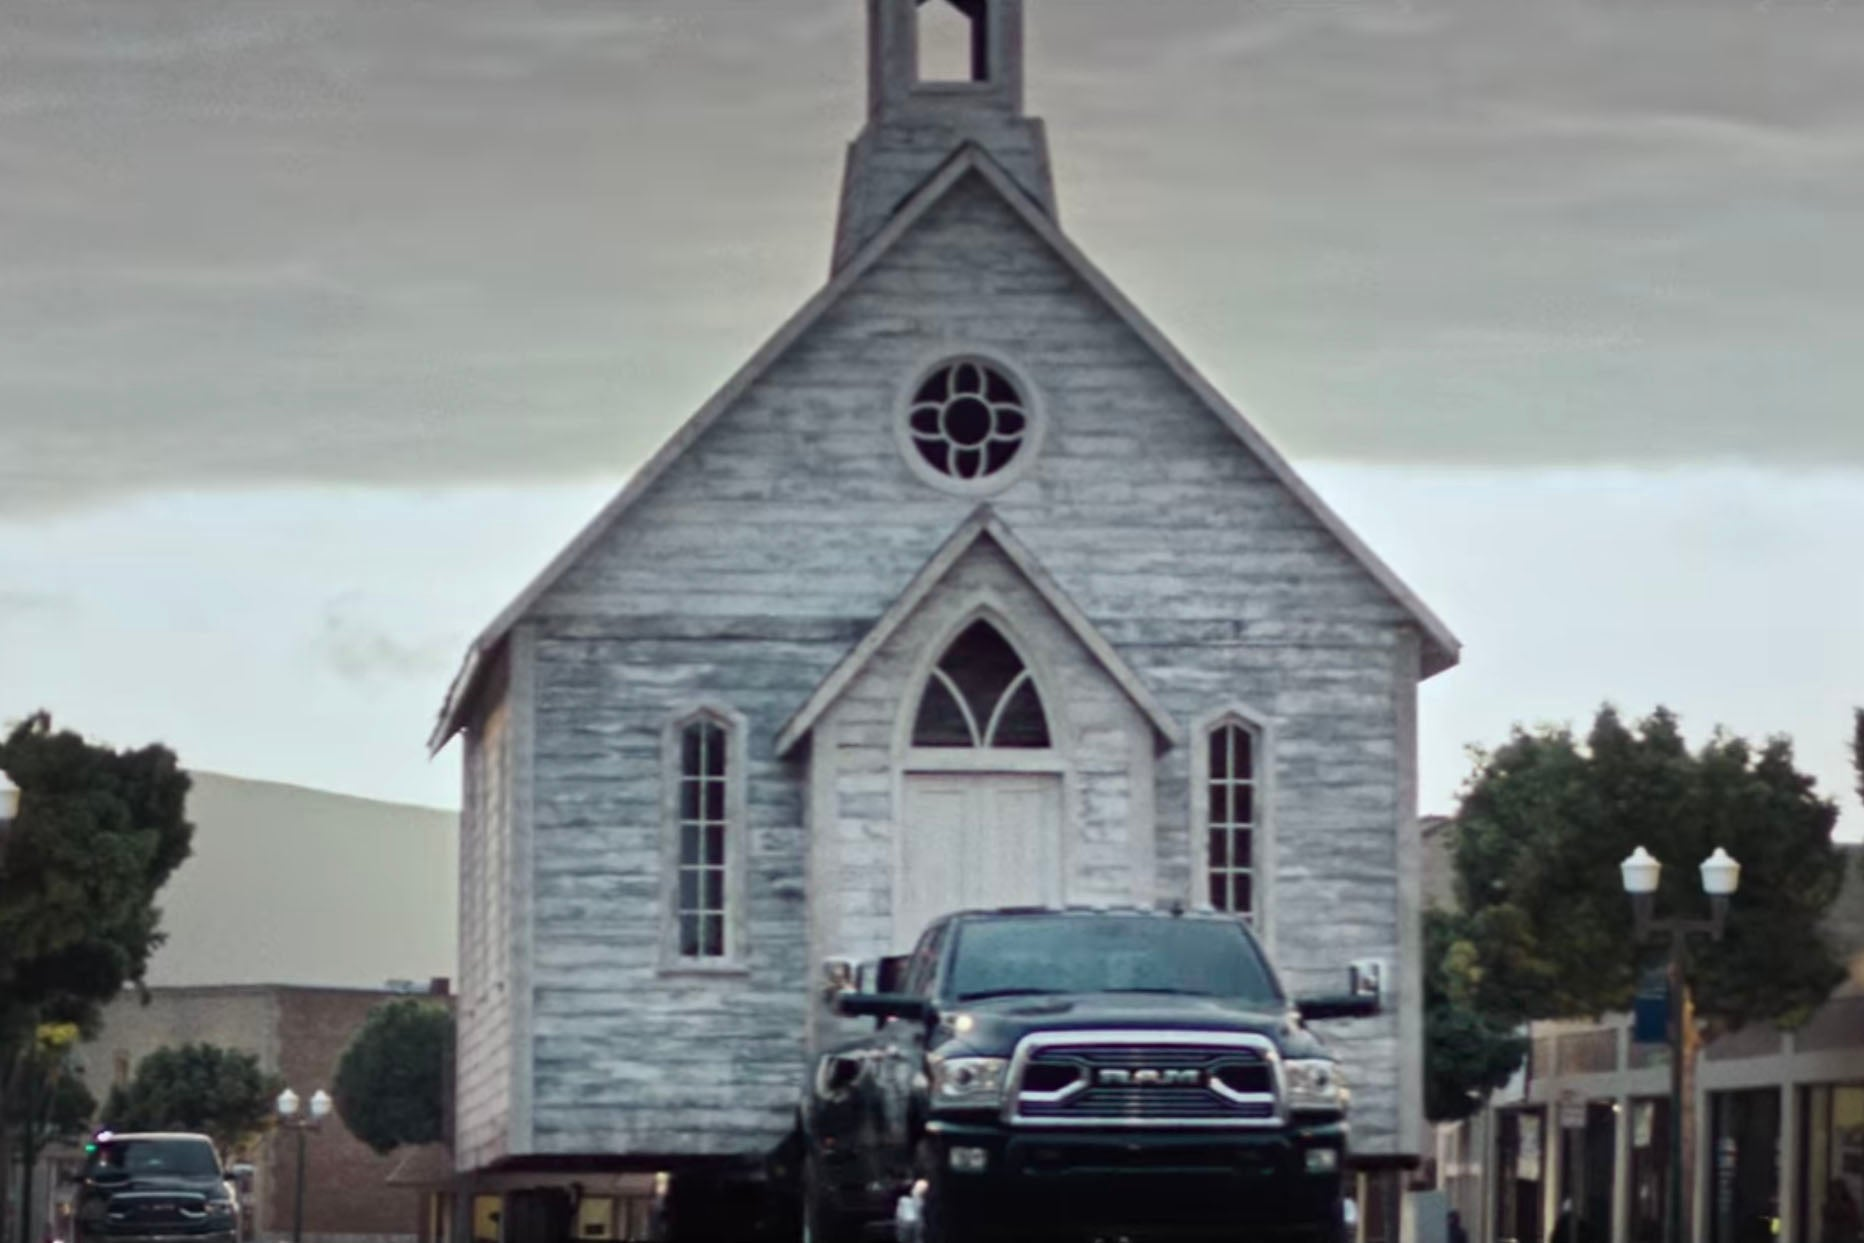 A Ram truck pulling a church.